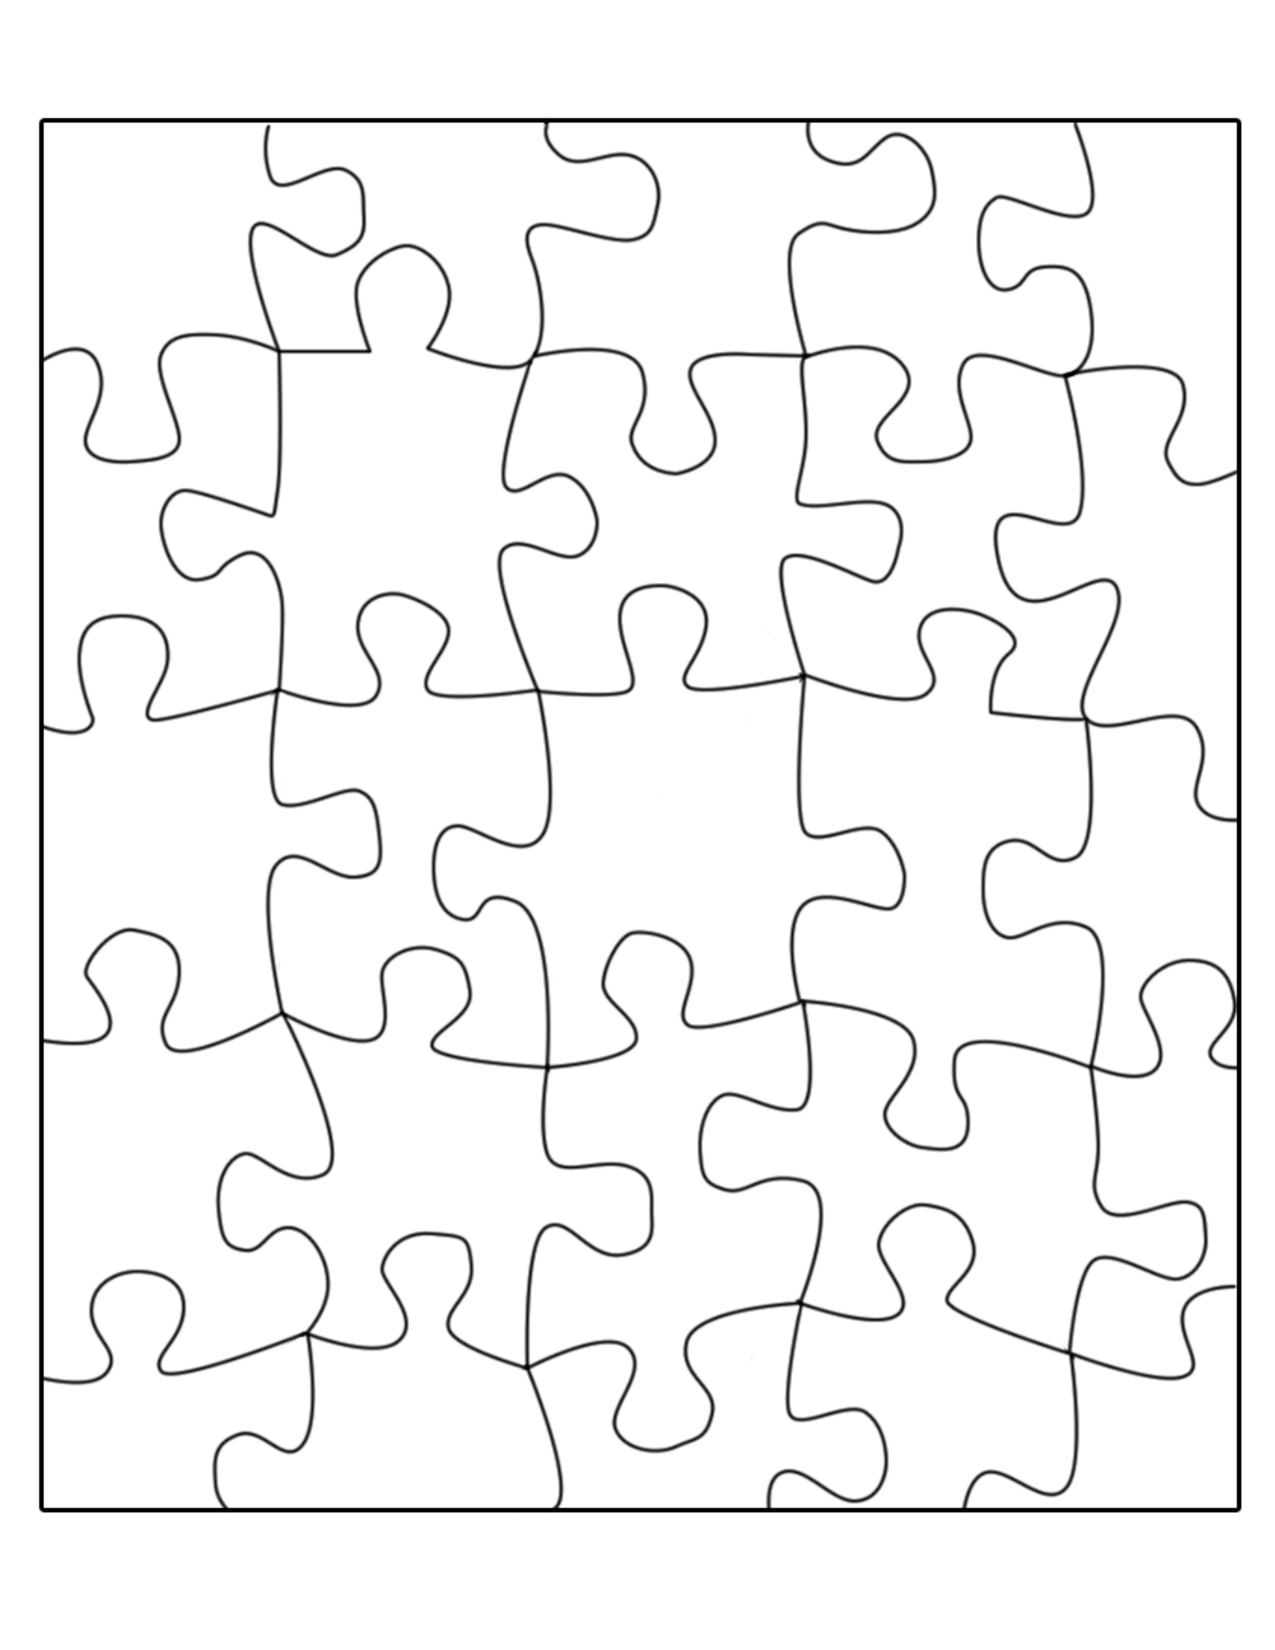 Free Puzzle Template, Download Free Clip Art, Free Clip Art On - Printable Jigsaw Puzzle Template